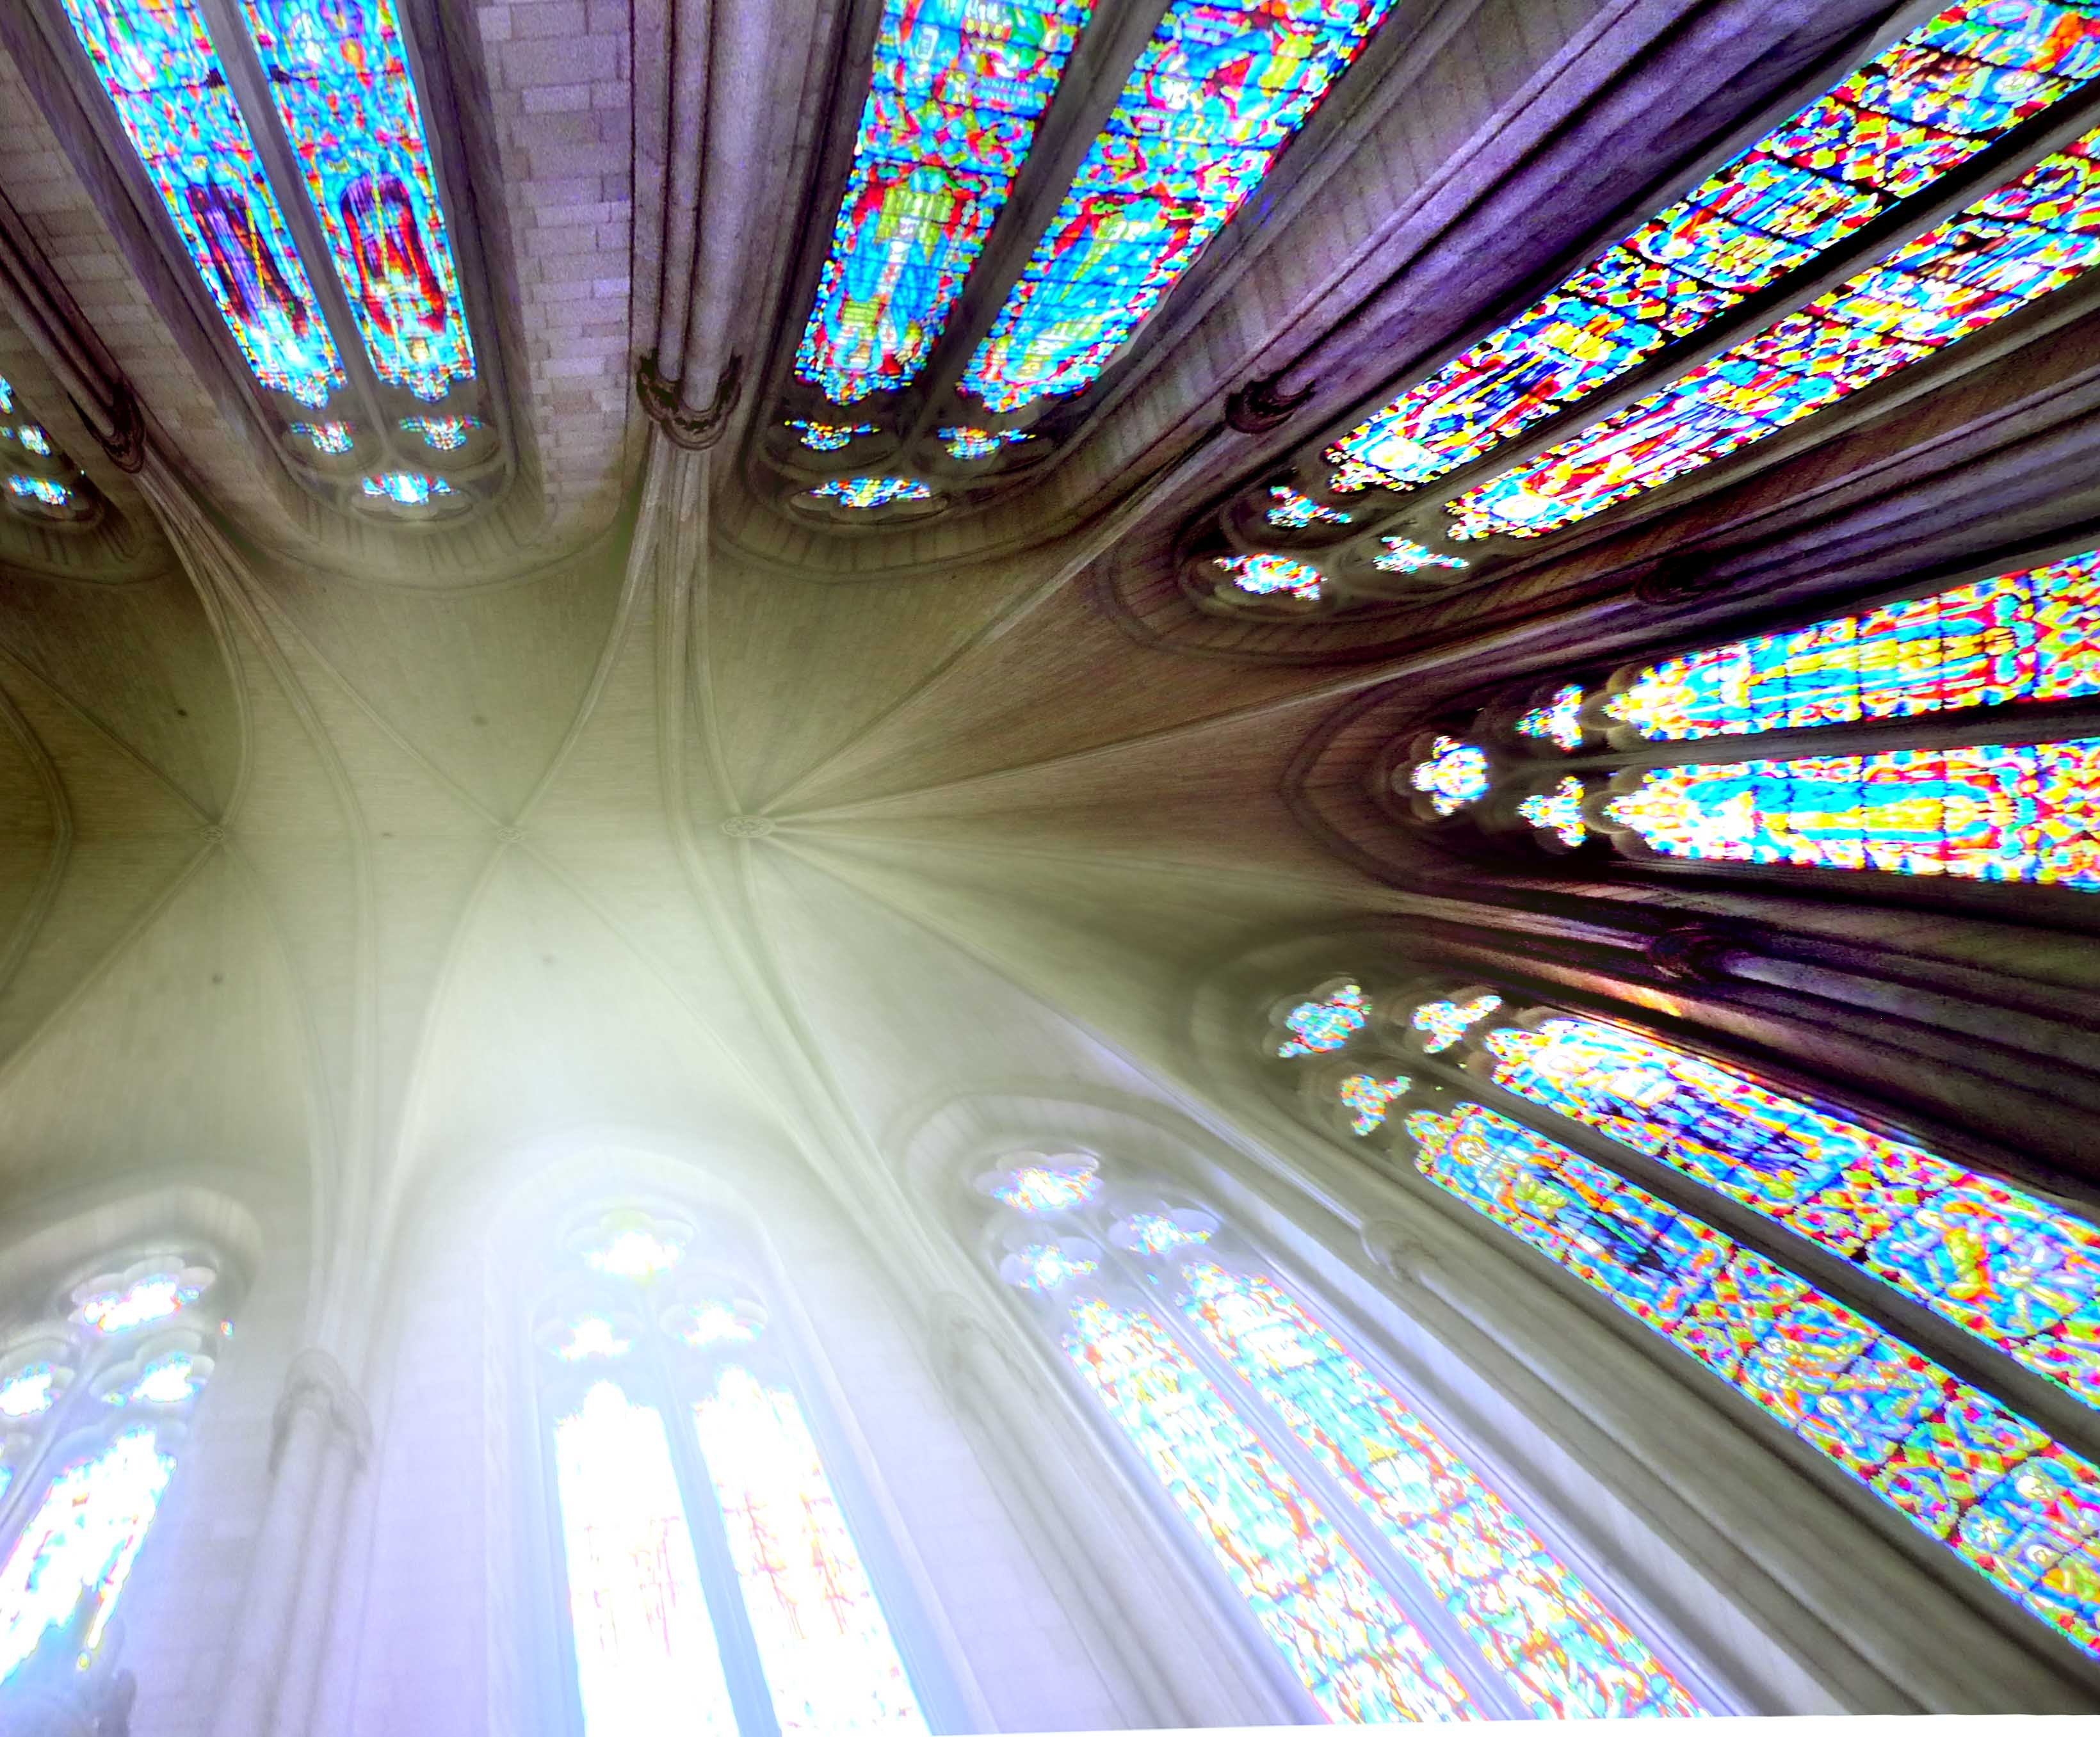 a view up from the floor of a cathedral to the ceiling, with stained glass windows on all sides